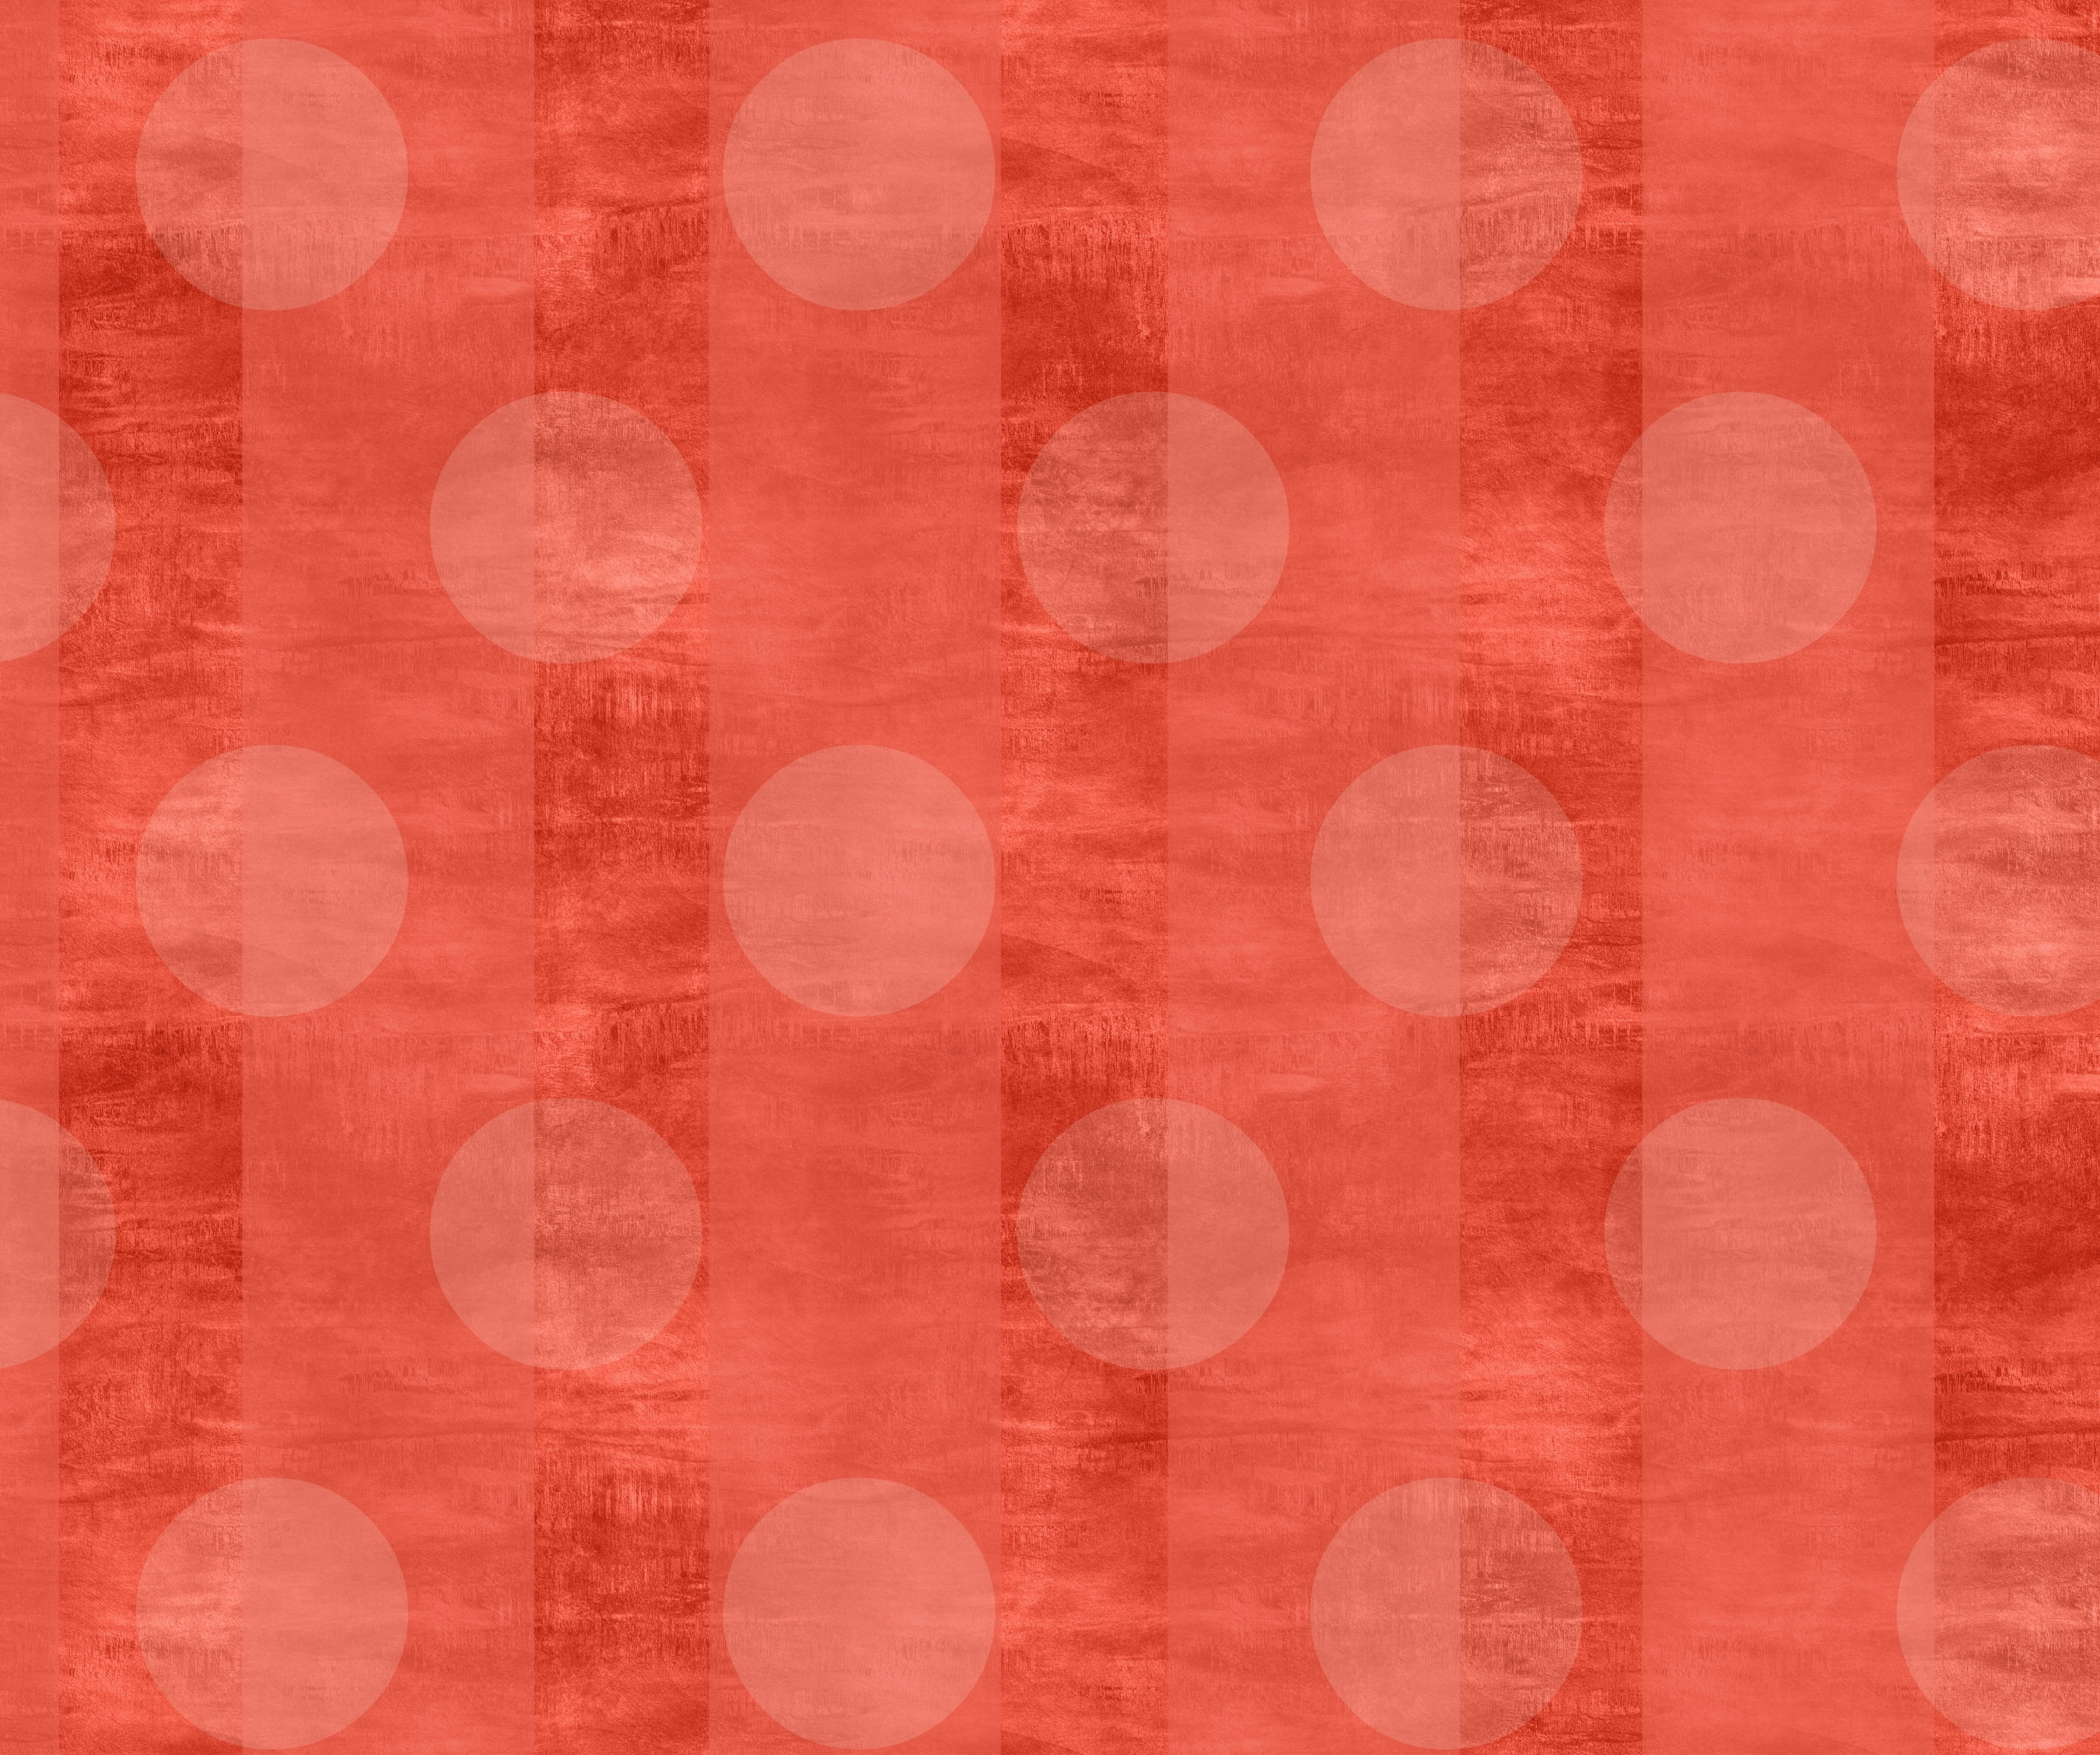 Polka Dots Vintage Red Background for Scrapbook